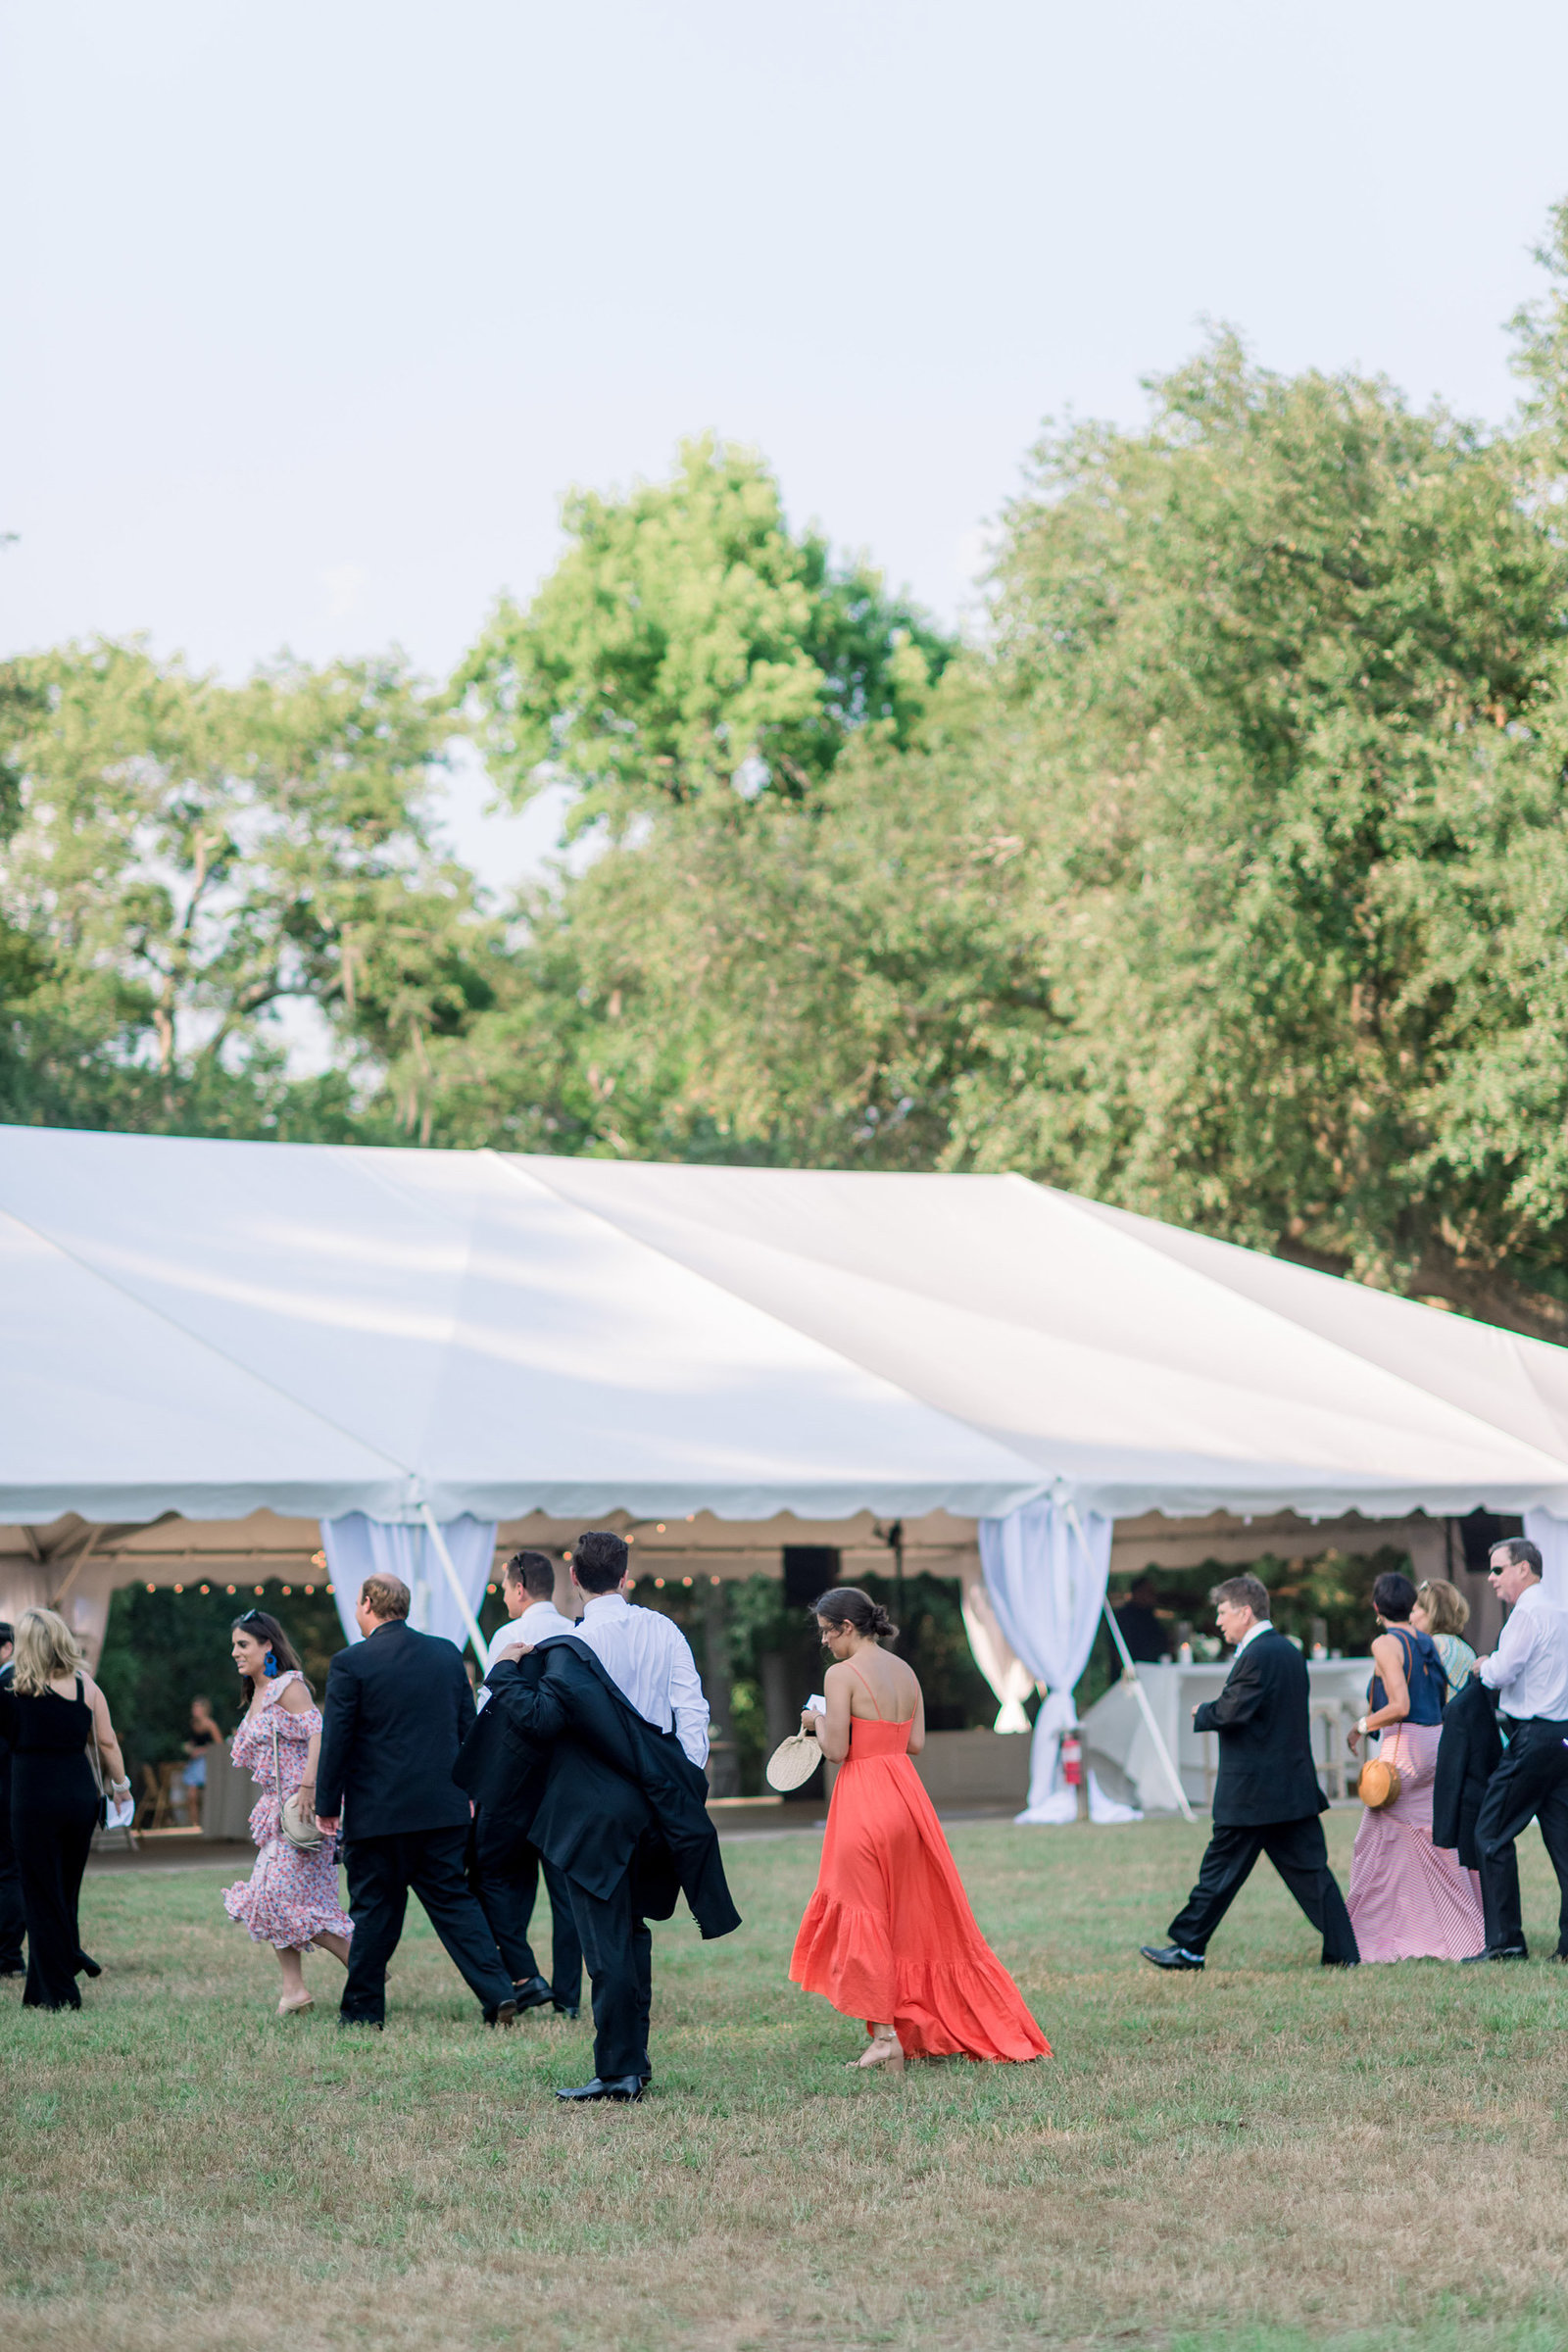 20190526-Pura-Soul-Photo-Caroline-Daniel-Wedding-506